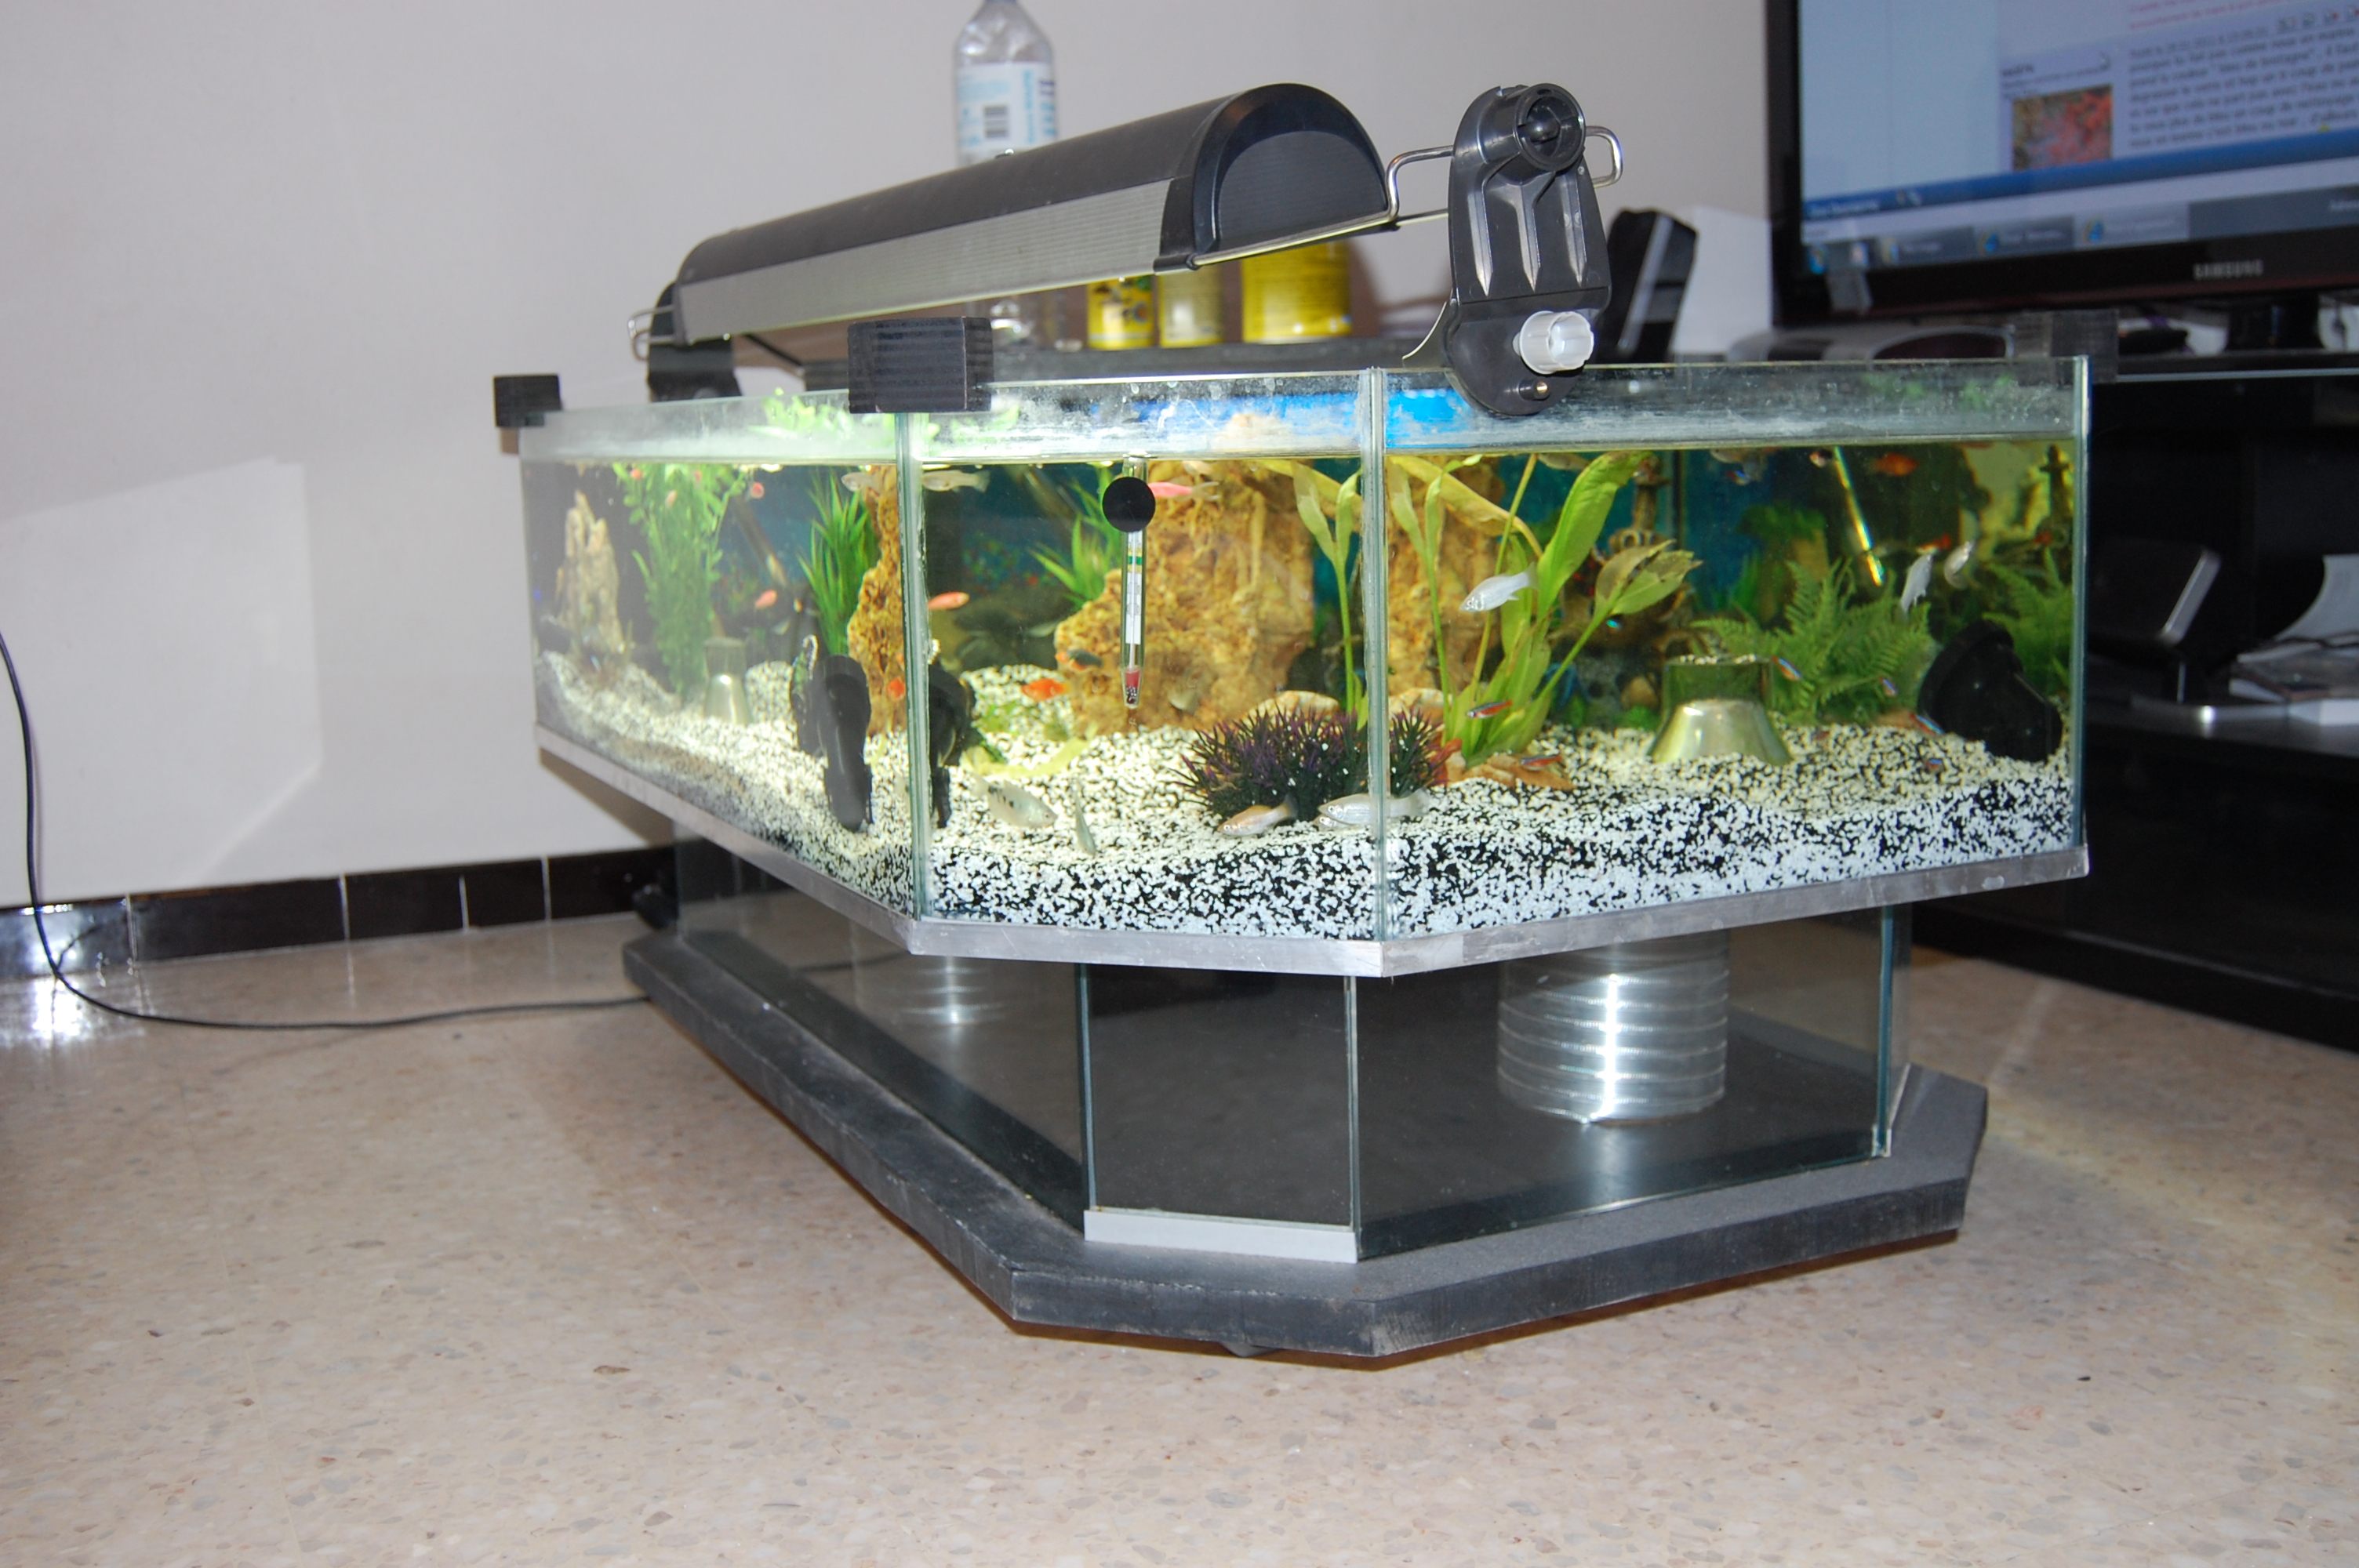 Dsc 0017 table basse aquarium fait maison lol lynka83 - Table basse fait maison ...